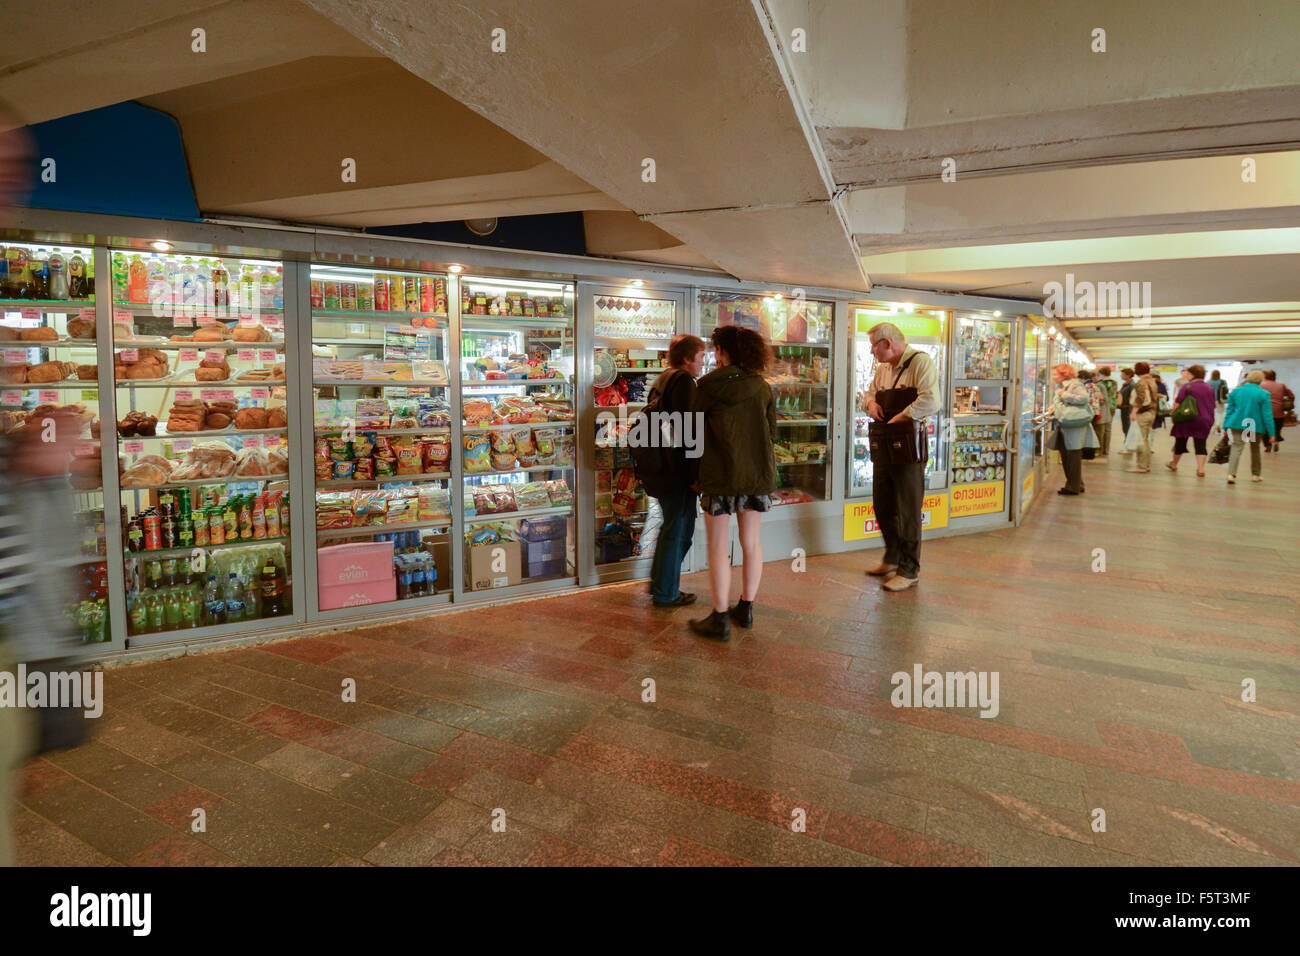 Shops in a pedestrian underpass leading to Moscow Metro - Moscow, Russia - Stock Image